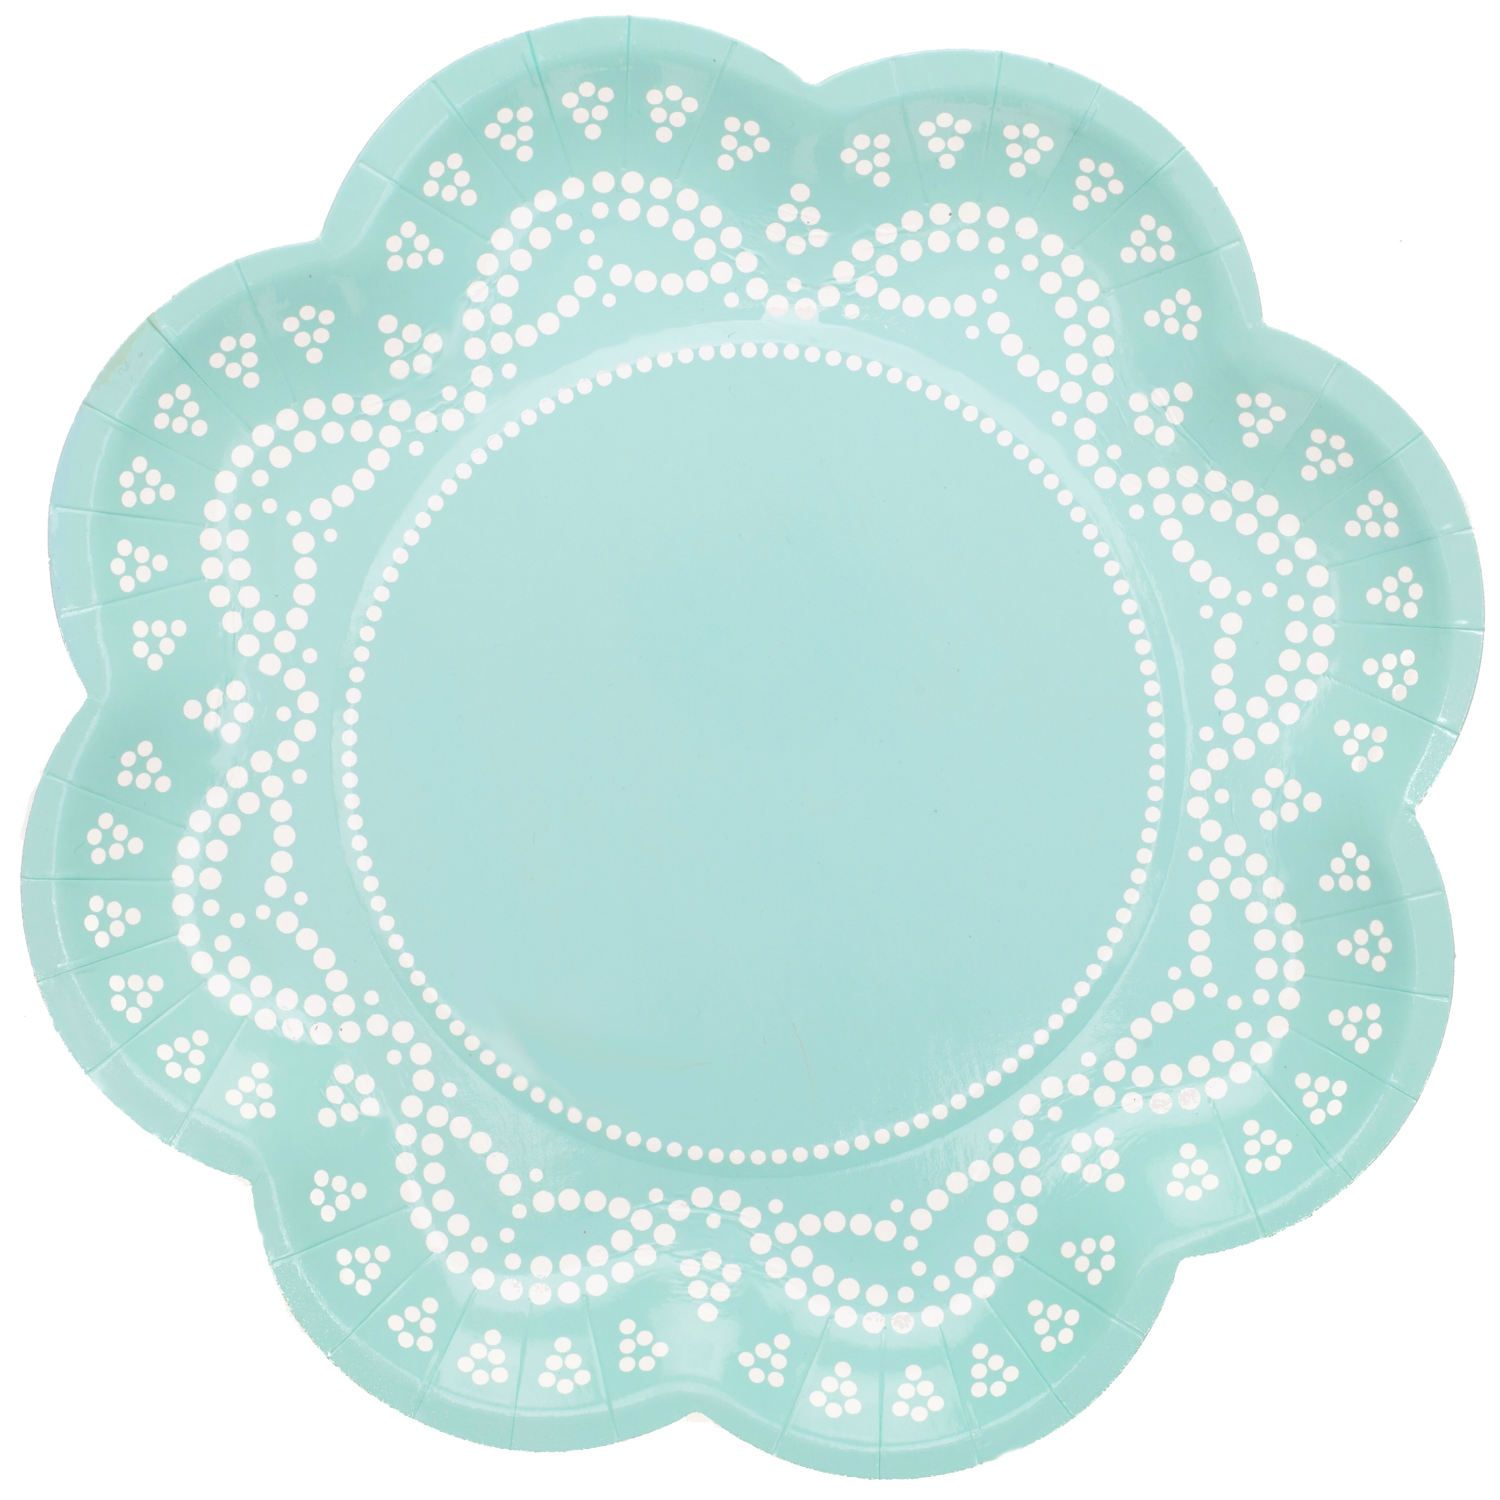 Plates | Lovely Lace Tiffany Blue Paper Plates | Aqua | Party Plates | Premium Quality  sc 1 st  Pinterest & Plates | Lovely Lace Tiffany Blue Paper Plates | Aqua | Party Plates ...